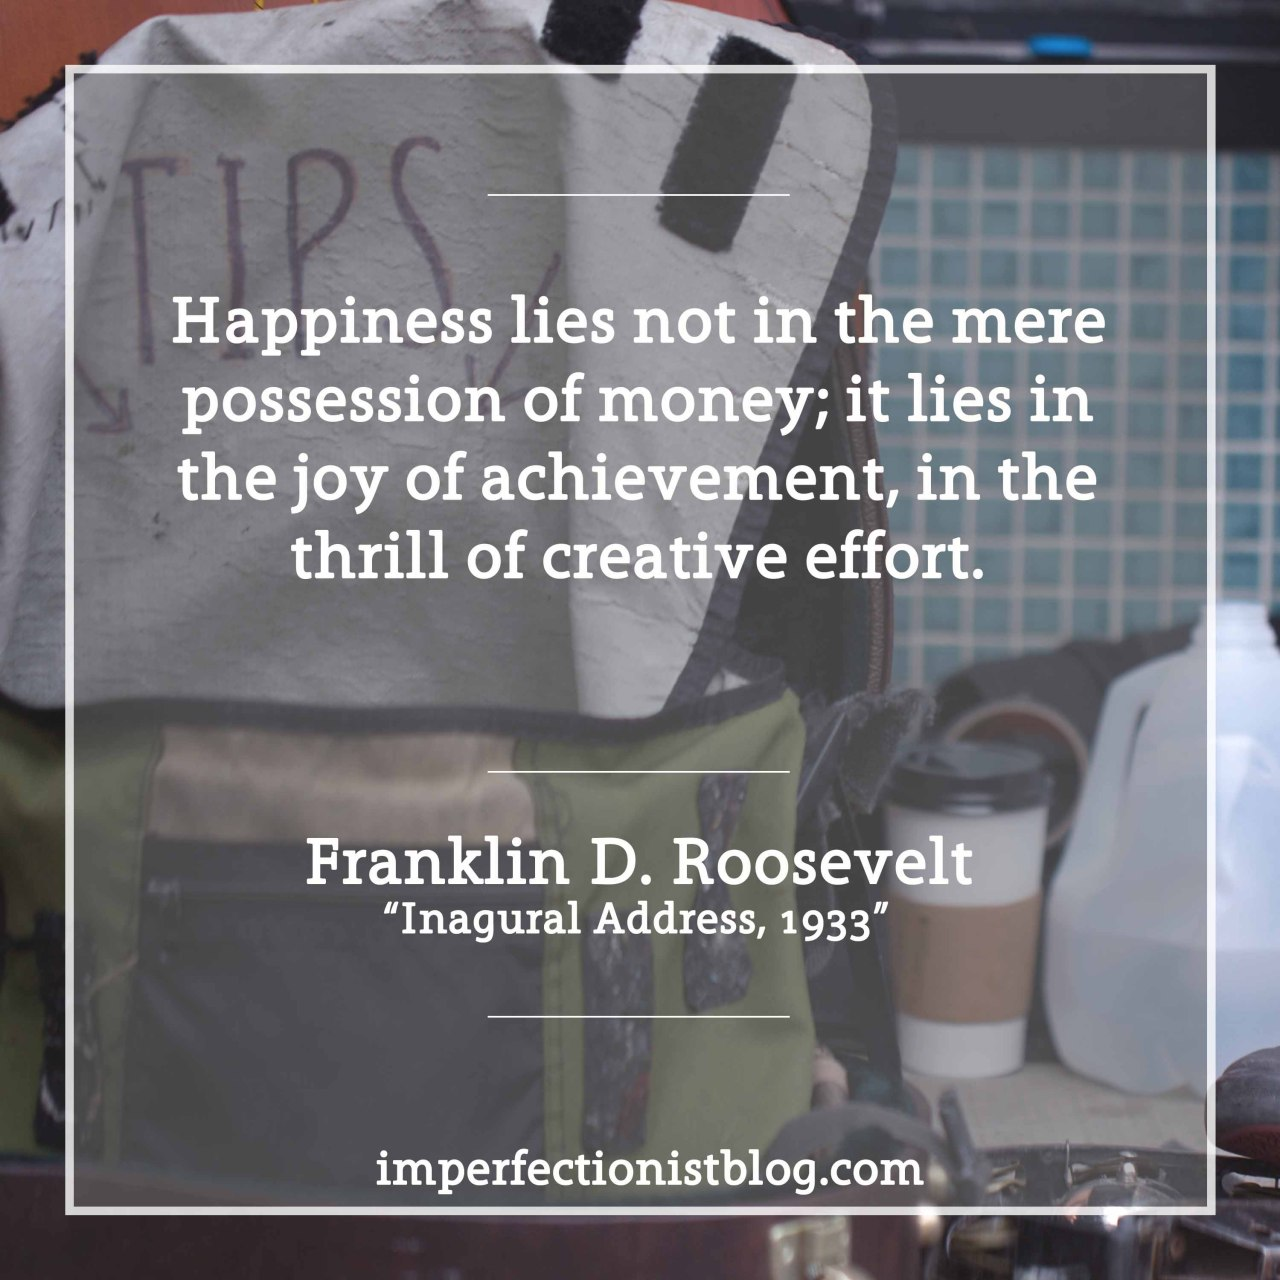 "#94 - ""Happiness lies not in the mere possession of money; it lies in the joy of achievement, in the thrill of creative effort."" -Franklin D. Roosevelt (Inaugural Address, March 4, 1933)